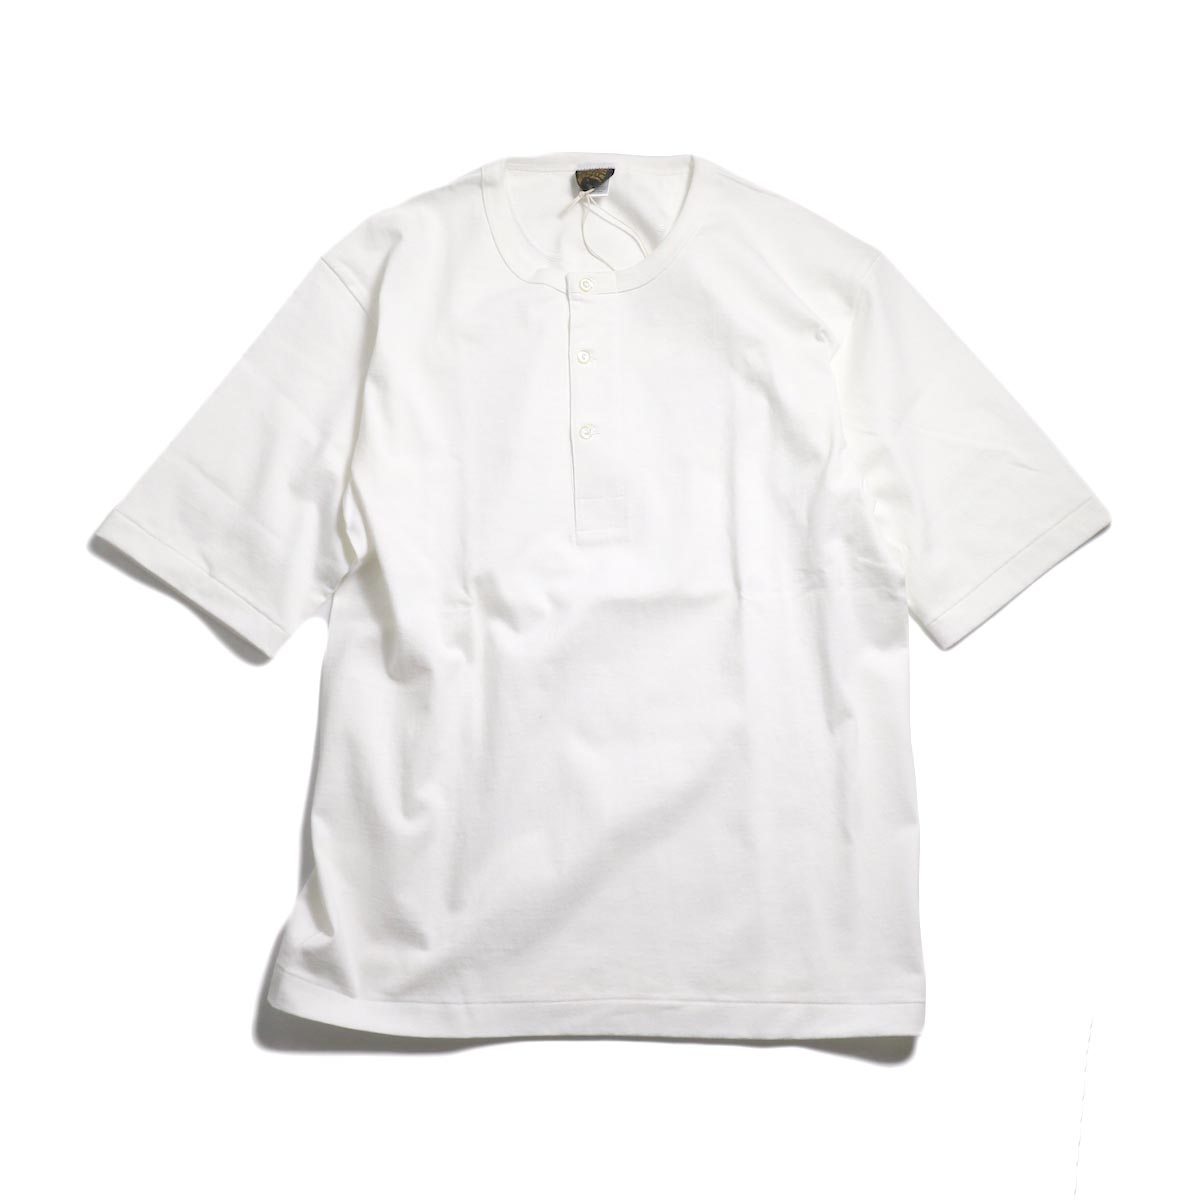 A VONTADE / 1/2 Sleeve Classic Henly Shirts -White